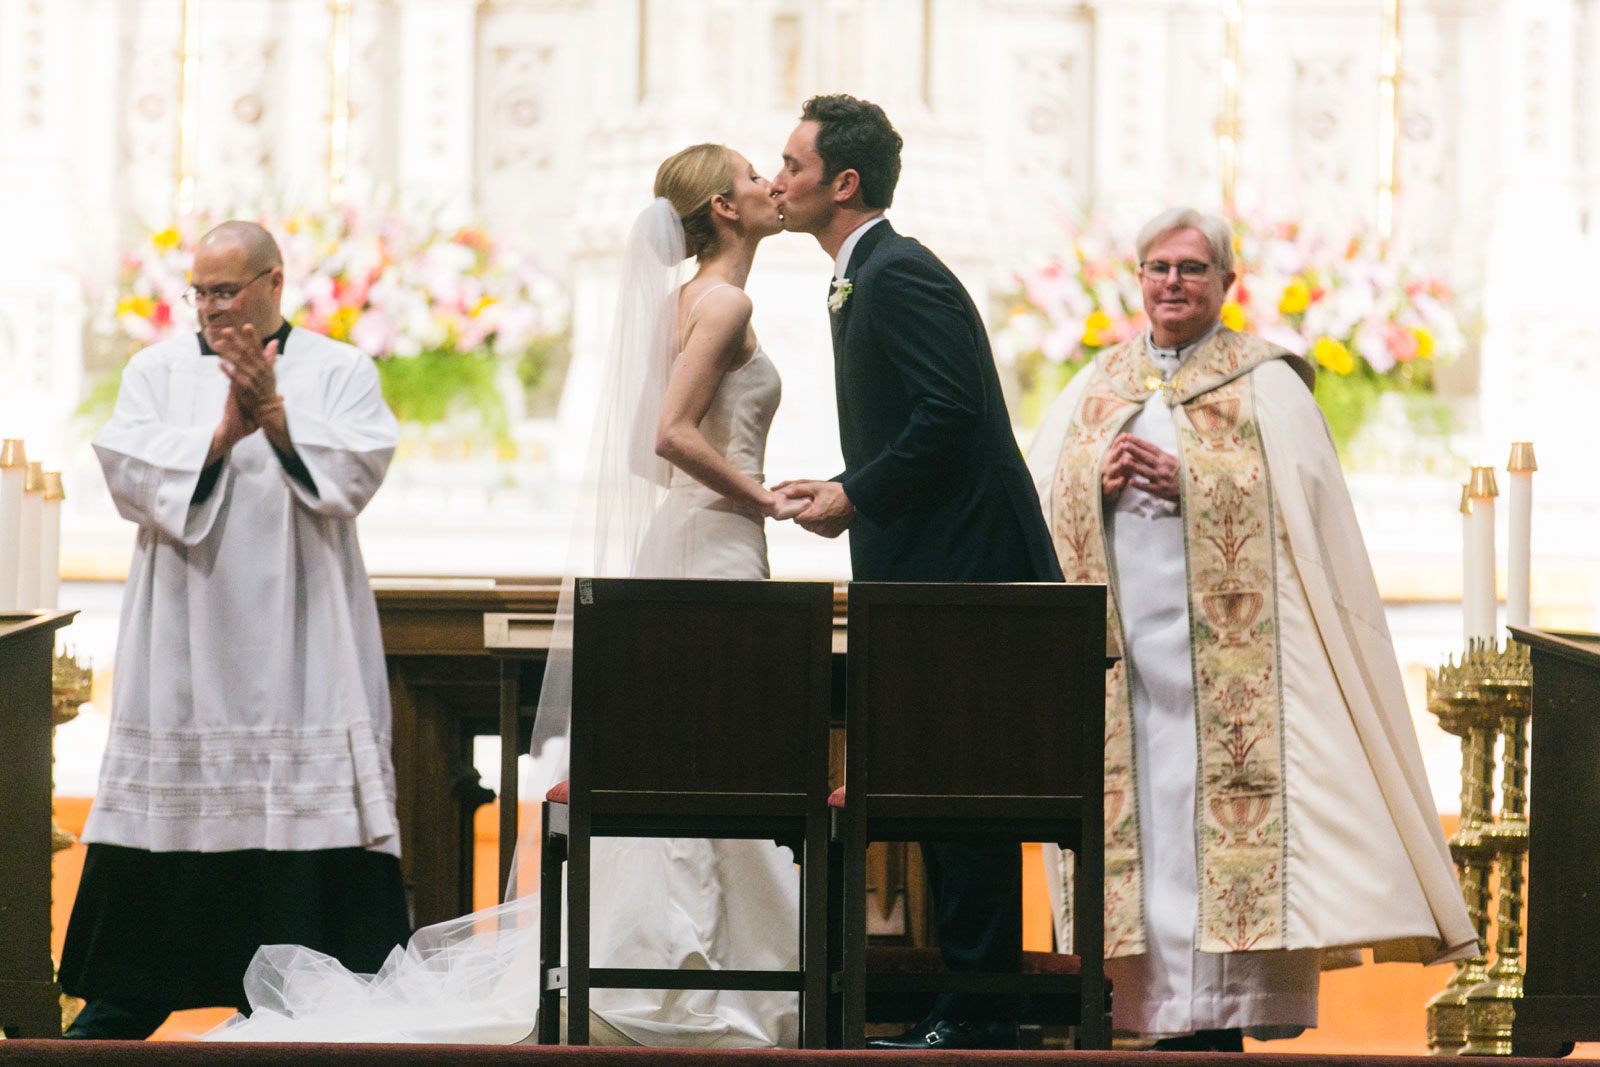 bride and groom share their first kiss at wedding ceremony at Cathedral of the holy cross